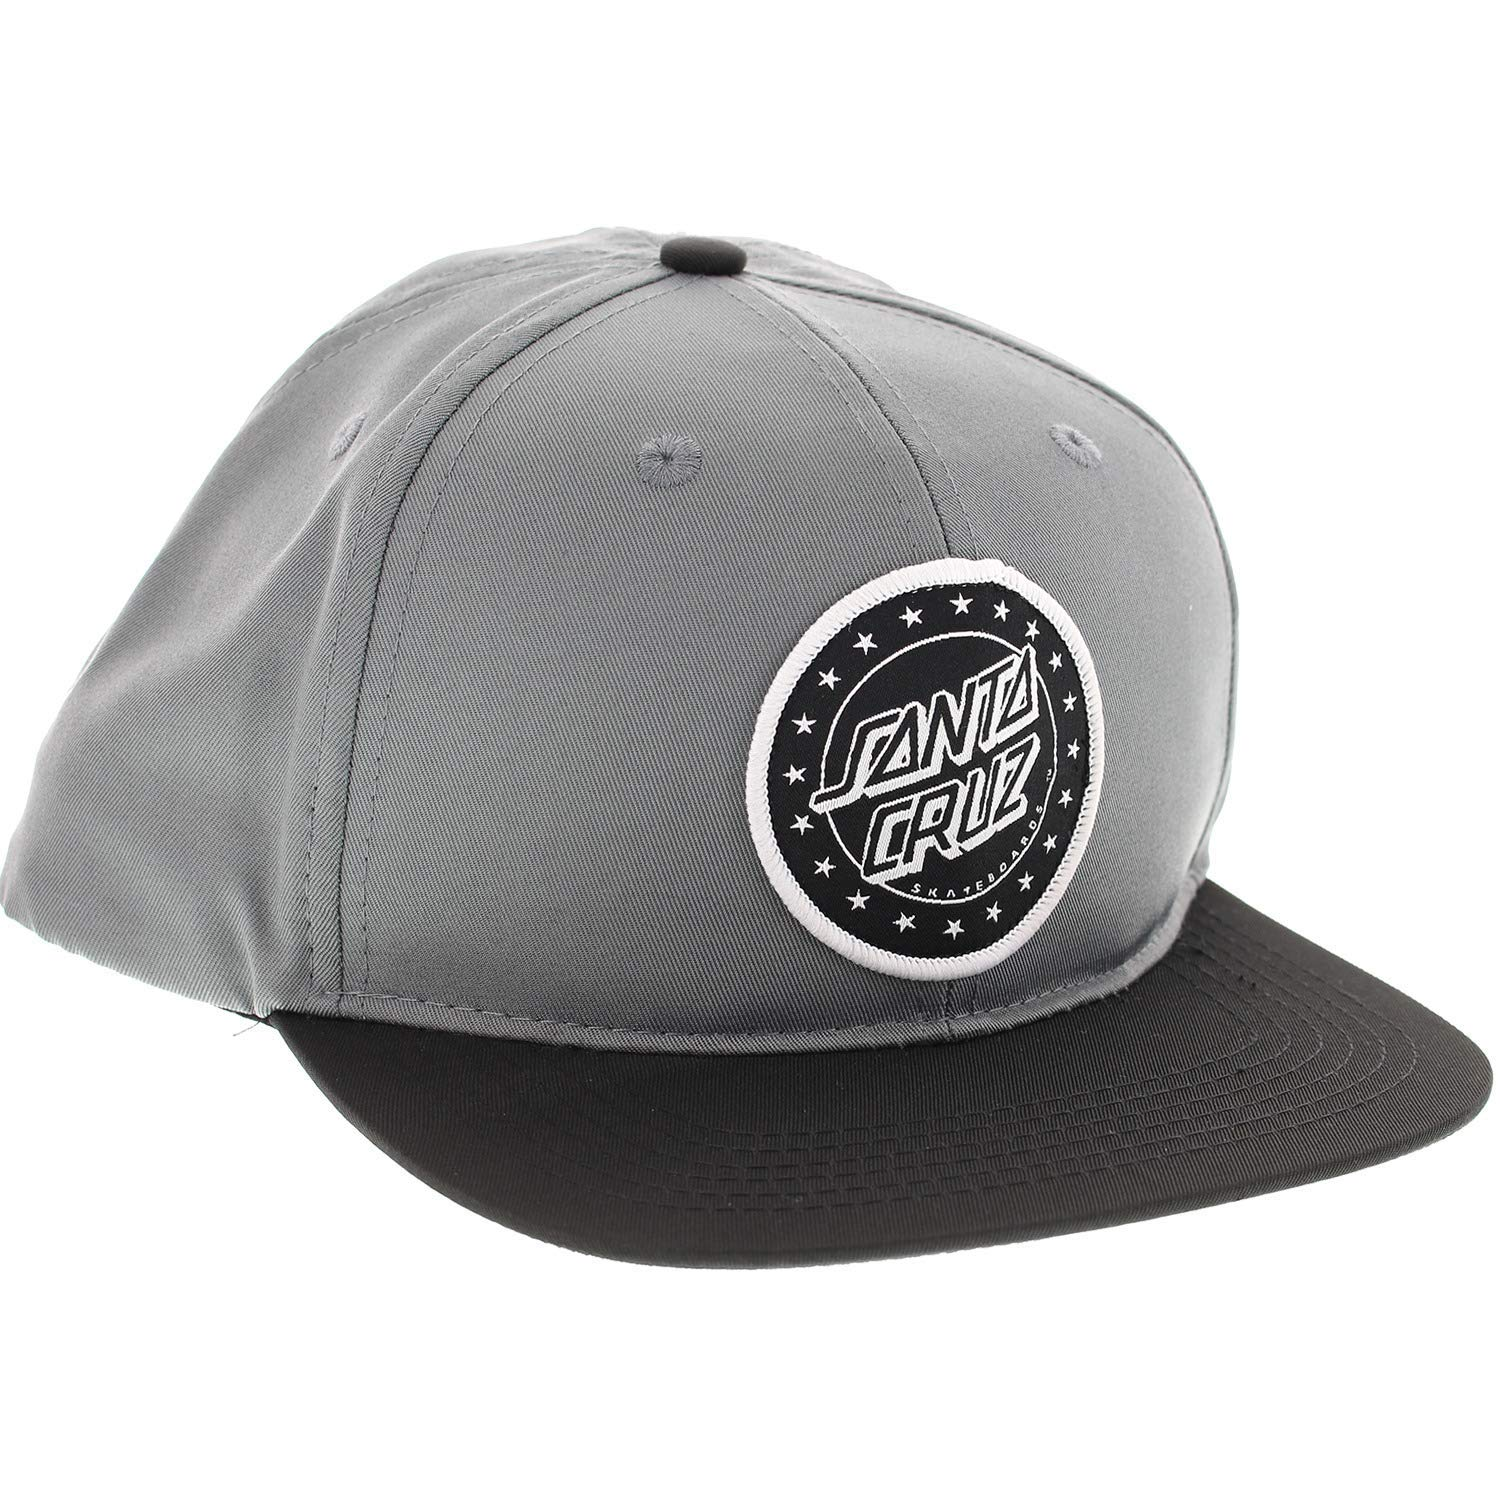 97d7f8542f6 Get Quotations · Santa Cruz Skateboards Spangle Grey Black Hat - Adjustable